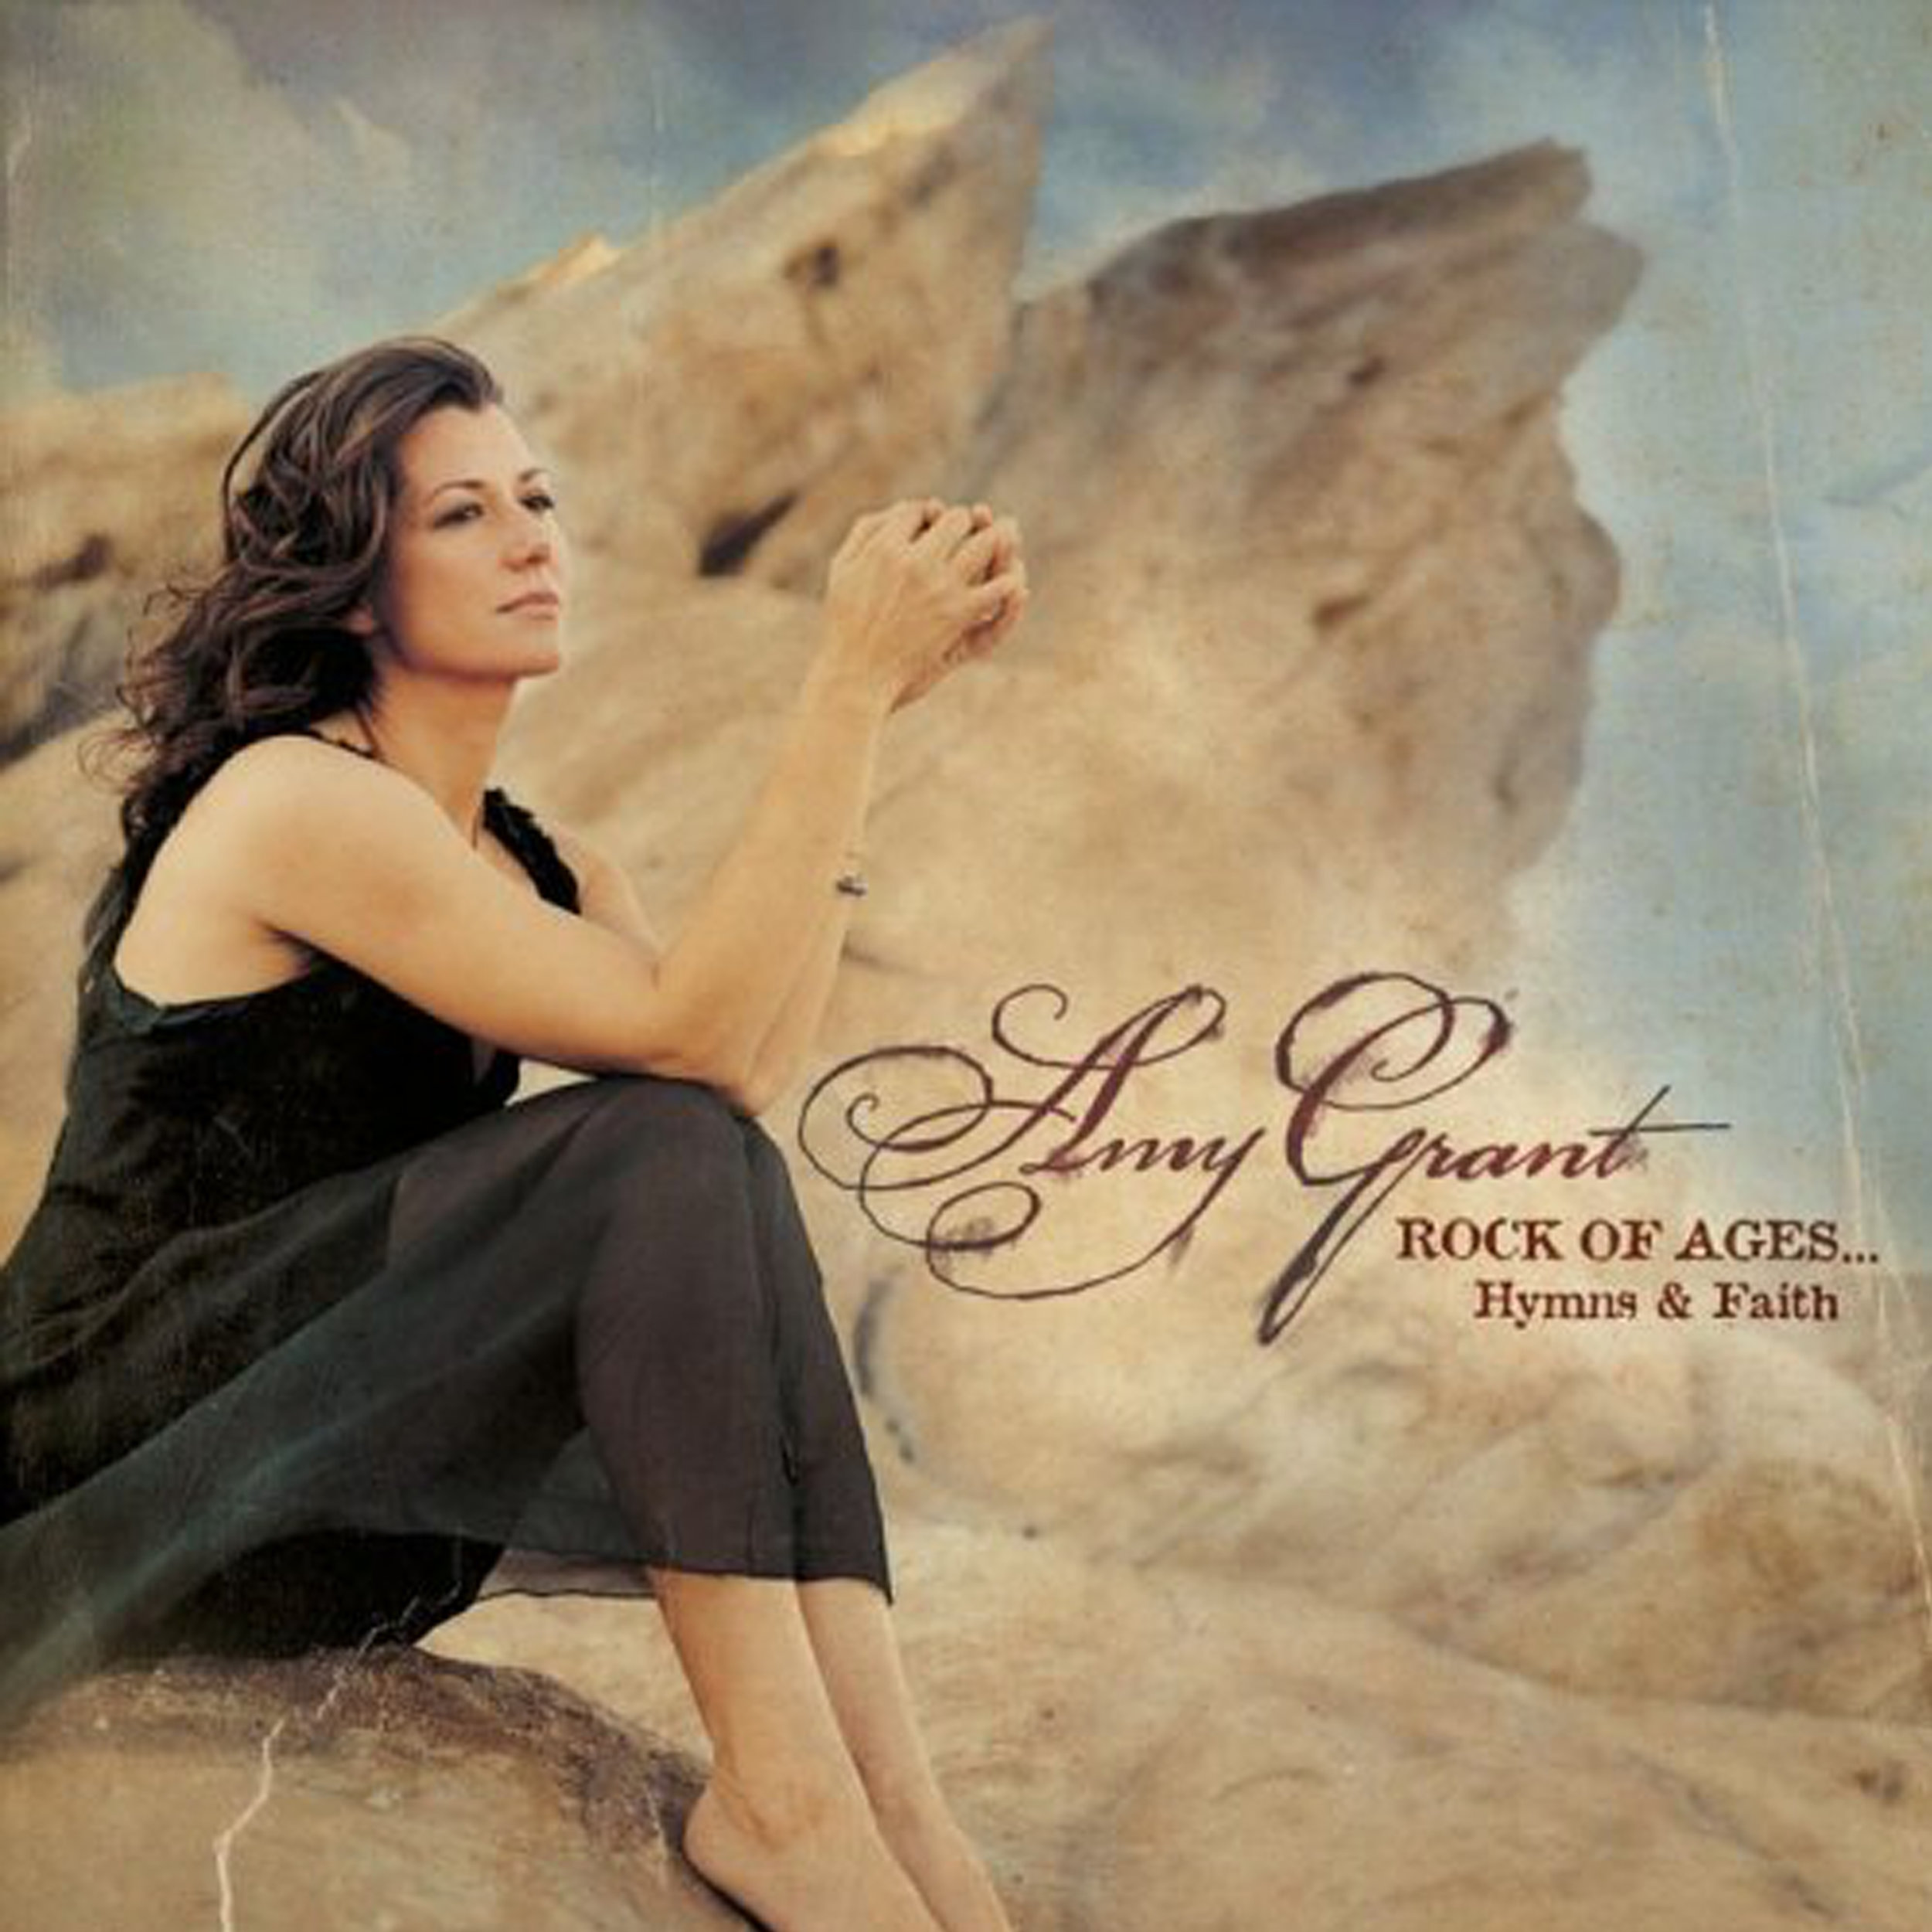 Amy Grant Rock of Ages.jpg